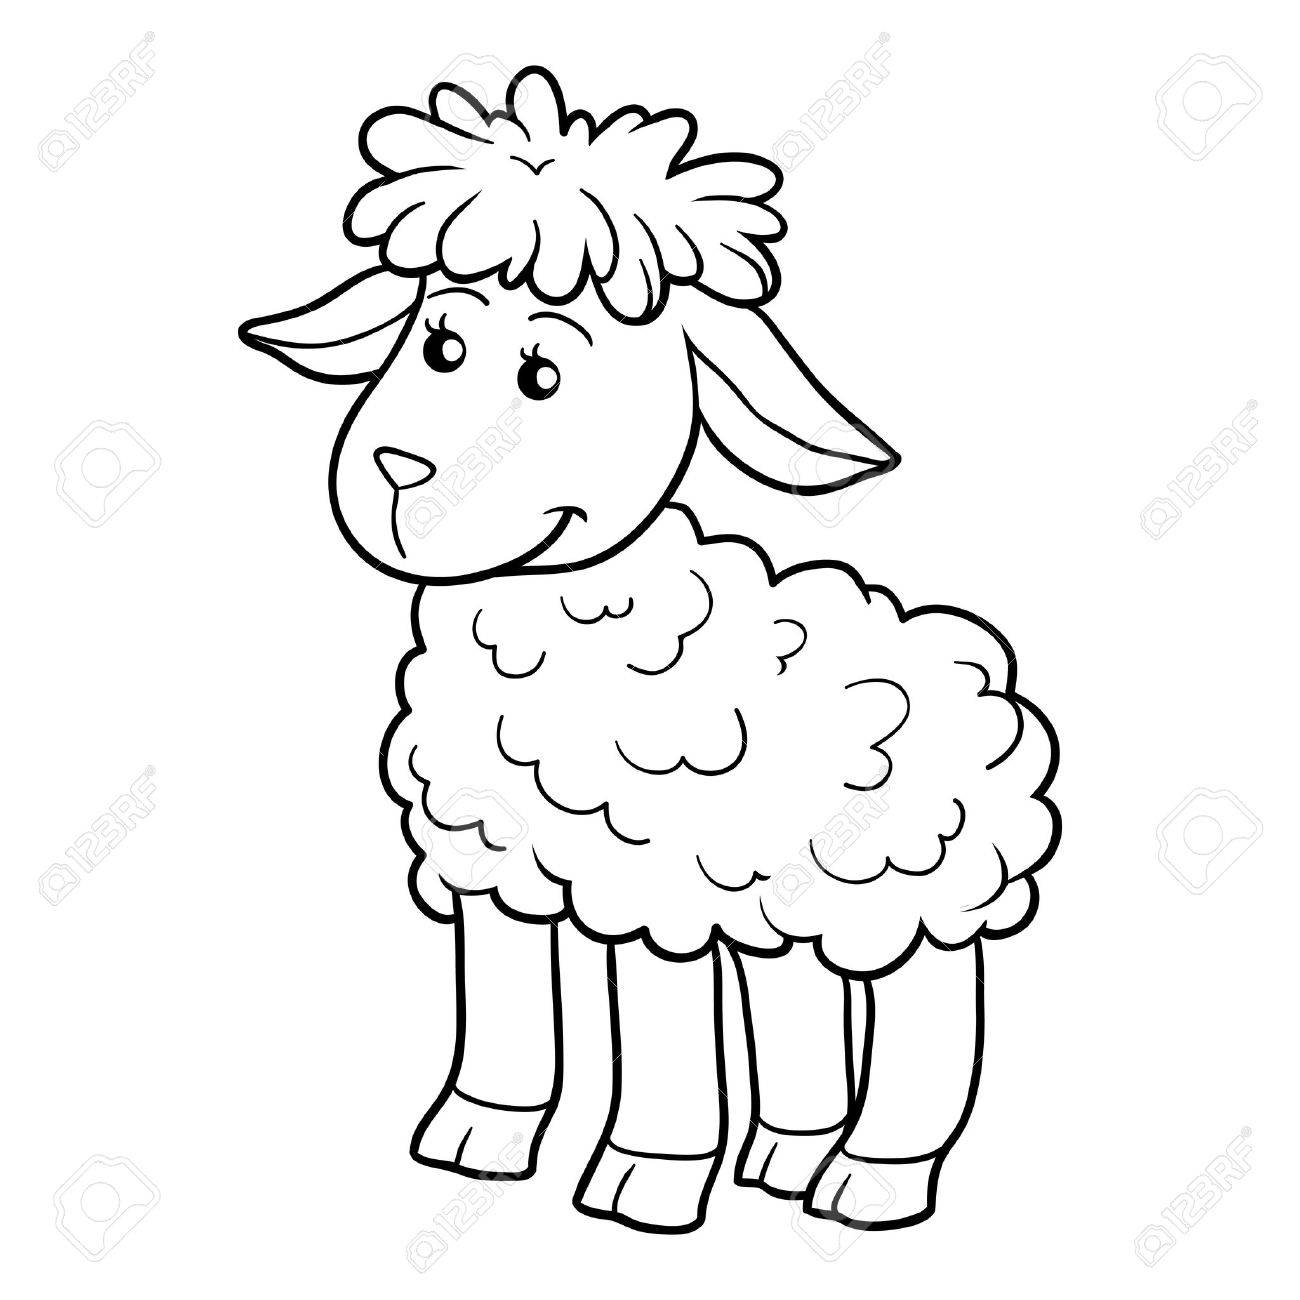 Game for children: Coloring book (sheep)